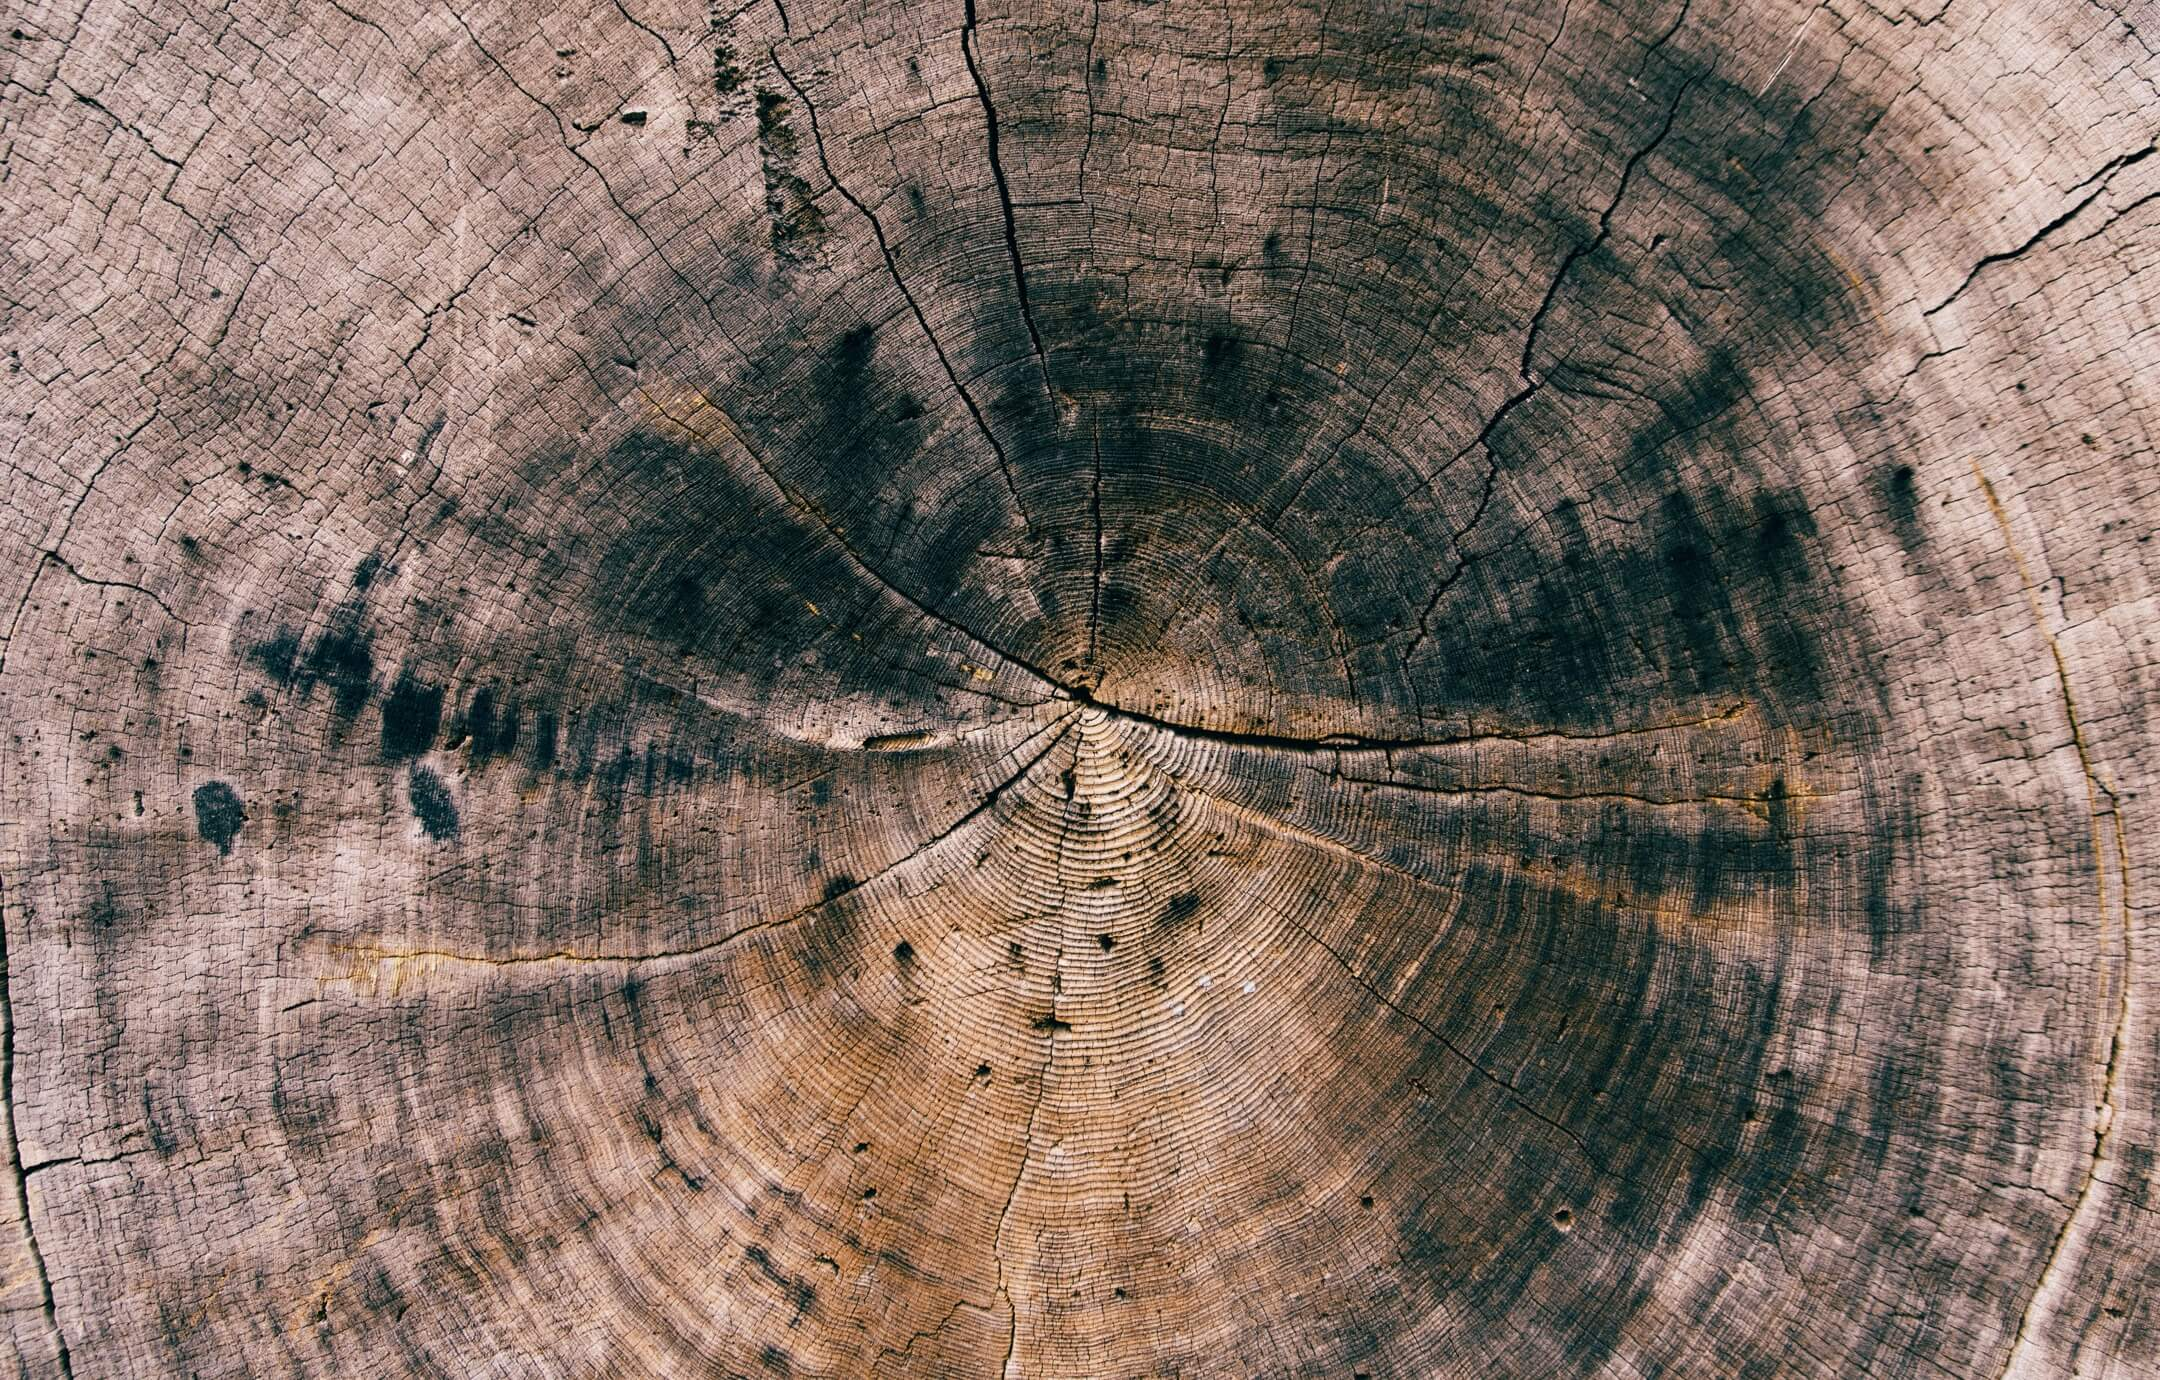 A close-up photograph of tree rings